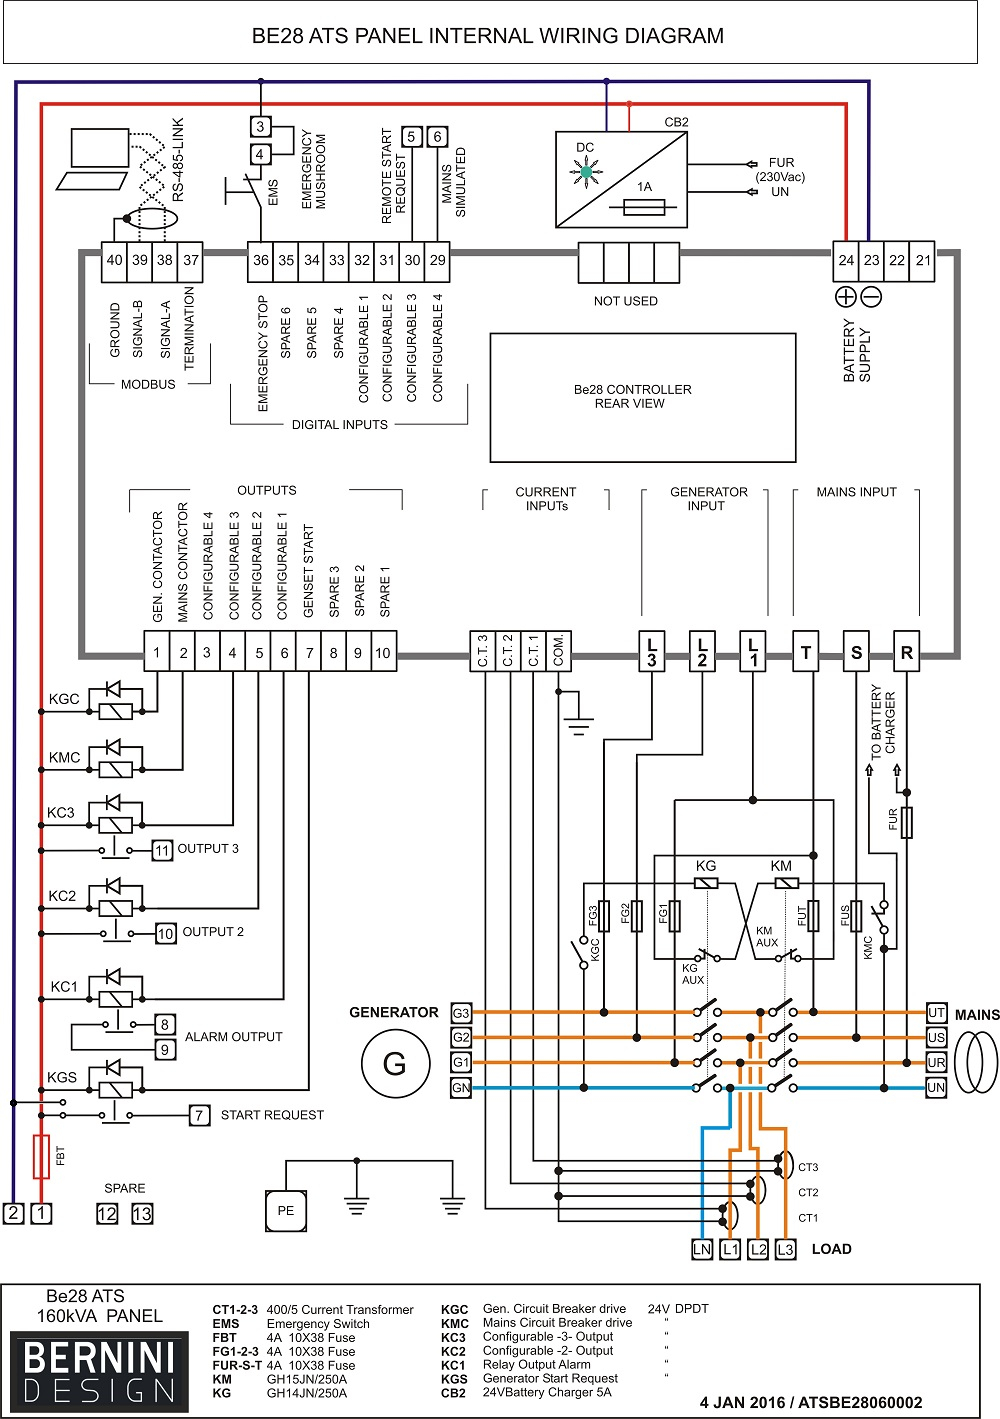 generac gp5500 wiring diagram Download-Automatic Transfer Switch Between Solargenerator And FS Generac Wiring Diagram 17-e